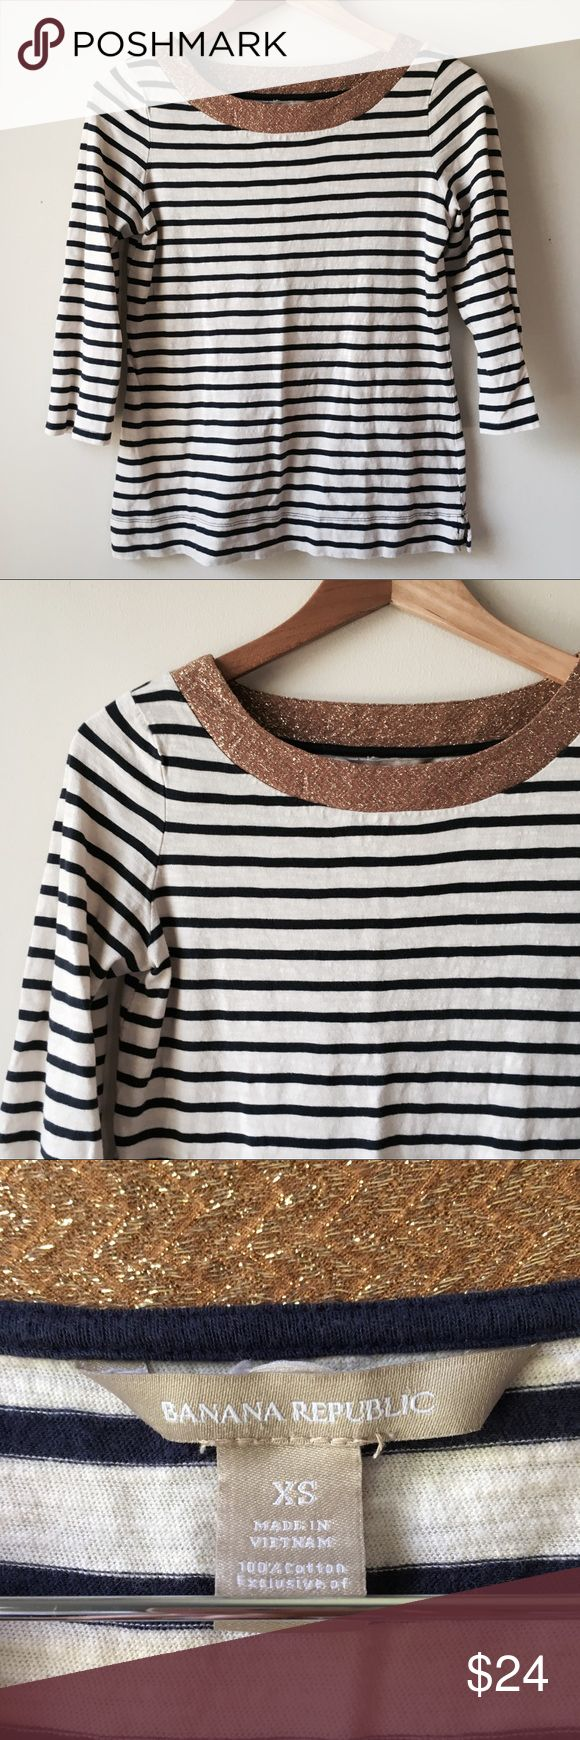 Banana Republic gold boat neck top Navy and cream stripe top wth shimmery gold boat neck cut.  100% cotton, soft t-shirt material. 3/4 sleeve. Women's size XS.  Gently worn but in excellent condition, no damage. Banana Republic Tops Tees - Long Sleeve